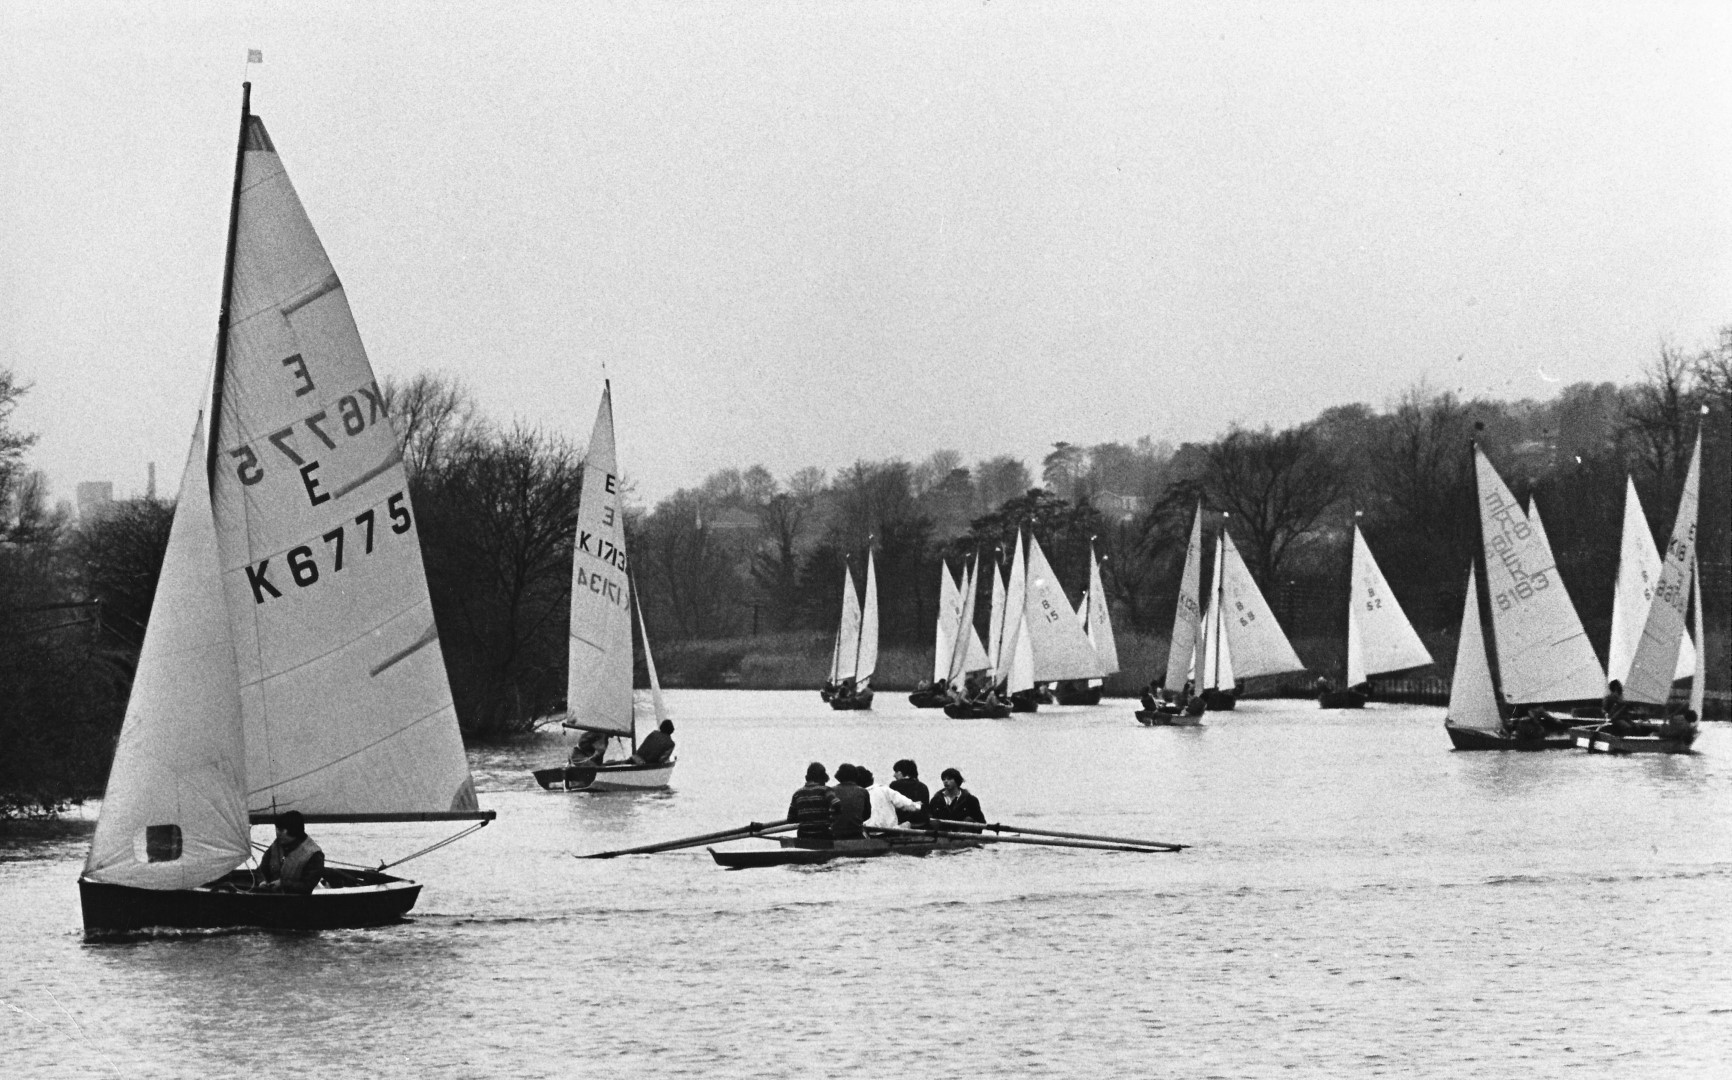 Members of NFSC out in force racing at Thorpe Dec 1975